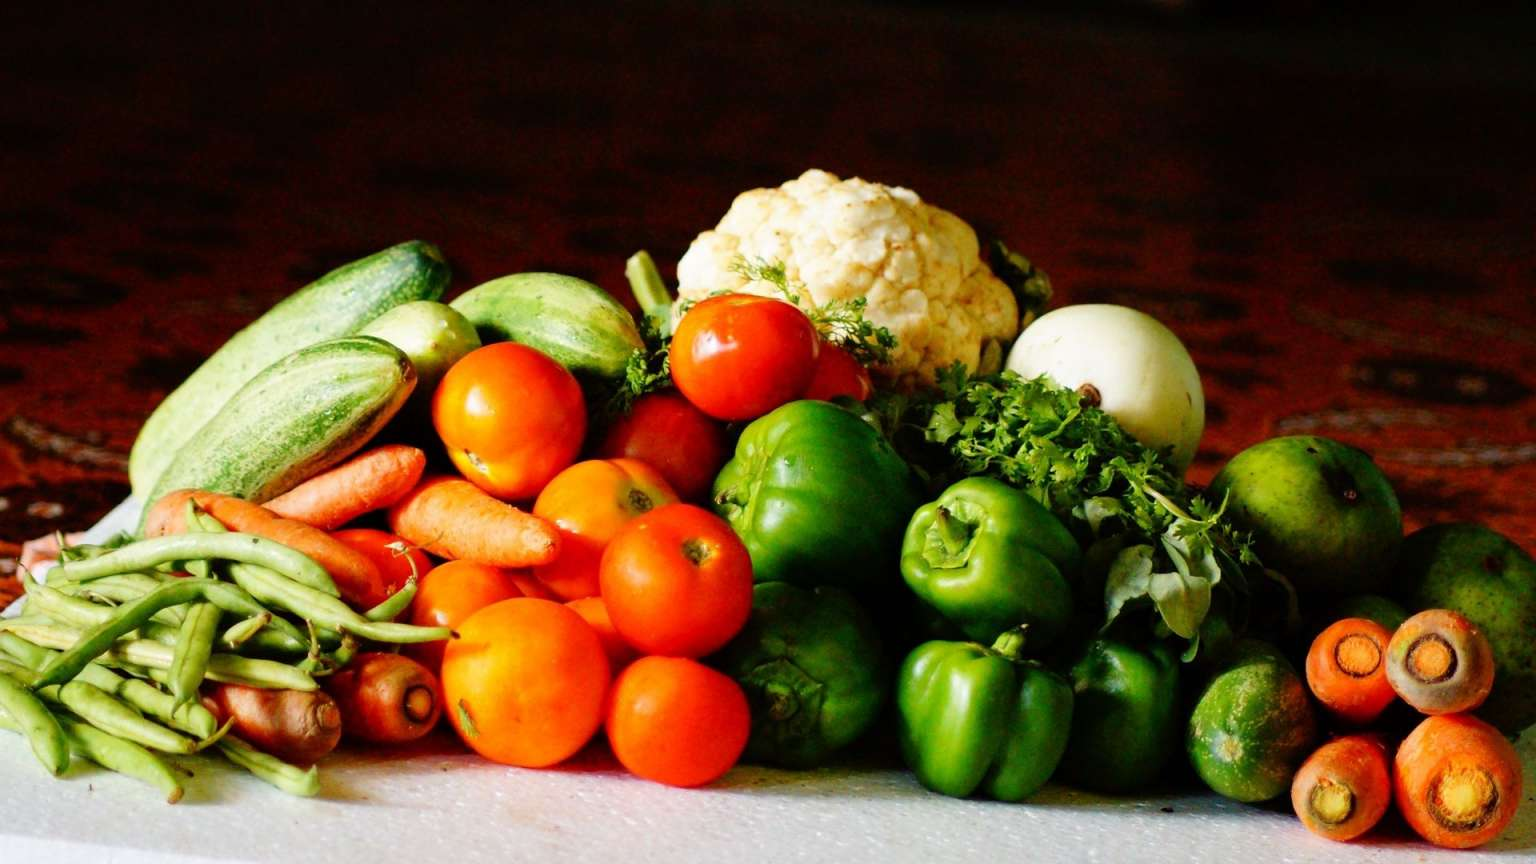 How to Store Your Groceries: Vegetables